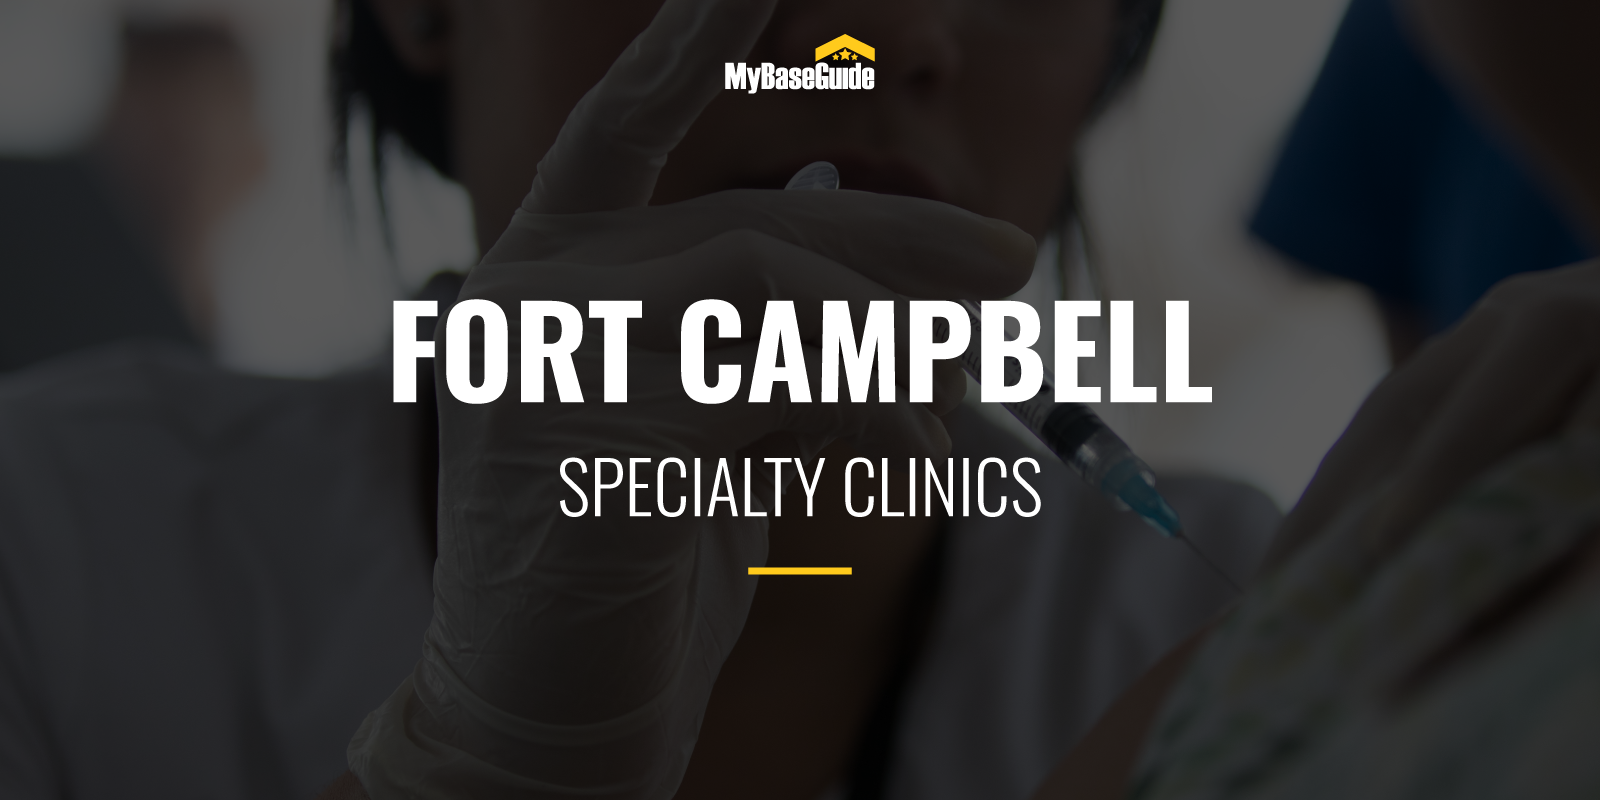 Fort Campbell Specialty Clinics